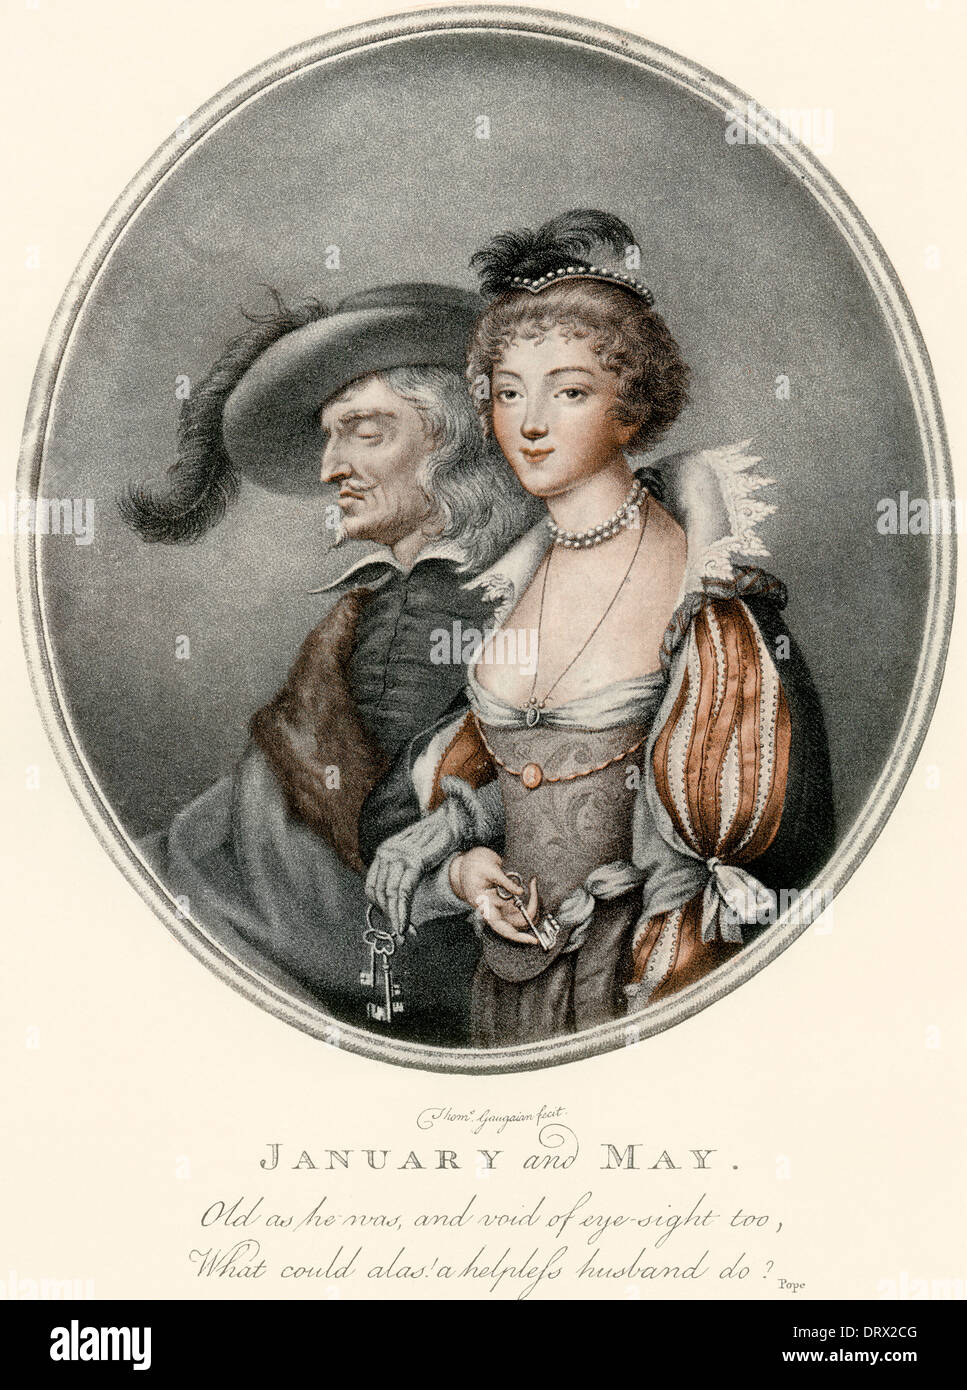 An illustration depicting the old husband and his young bride from Chaucer's The Merchant's Tale aka January - Stock Image